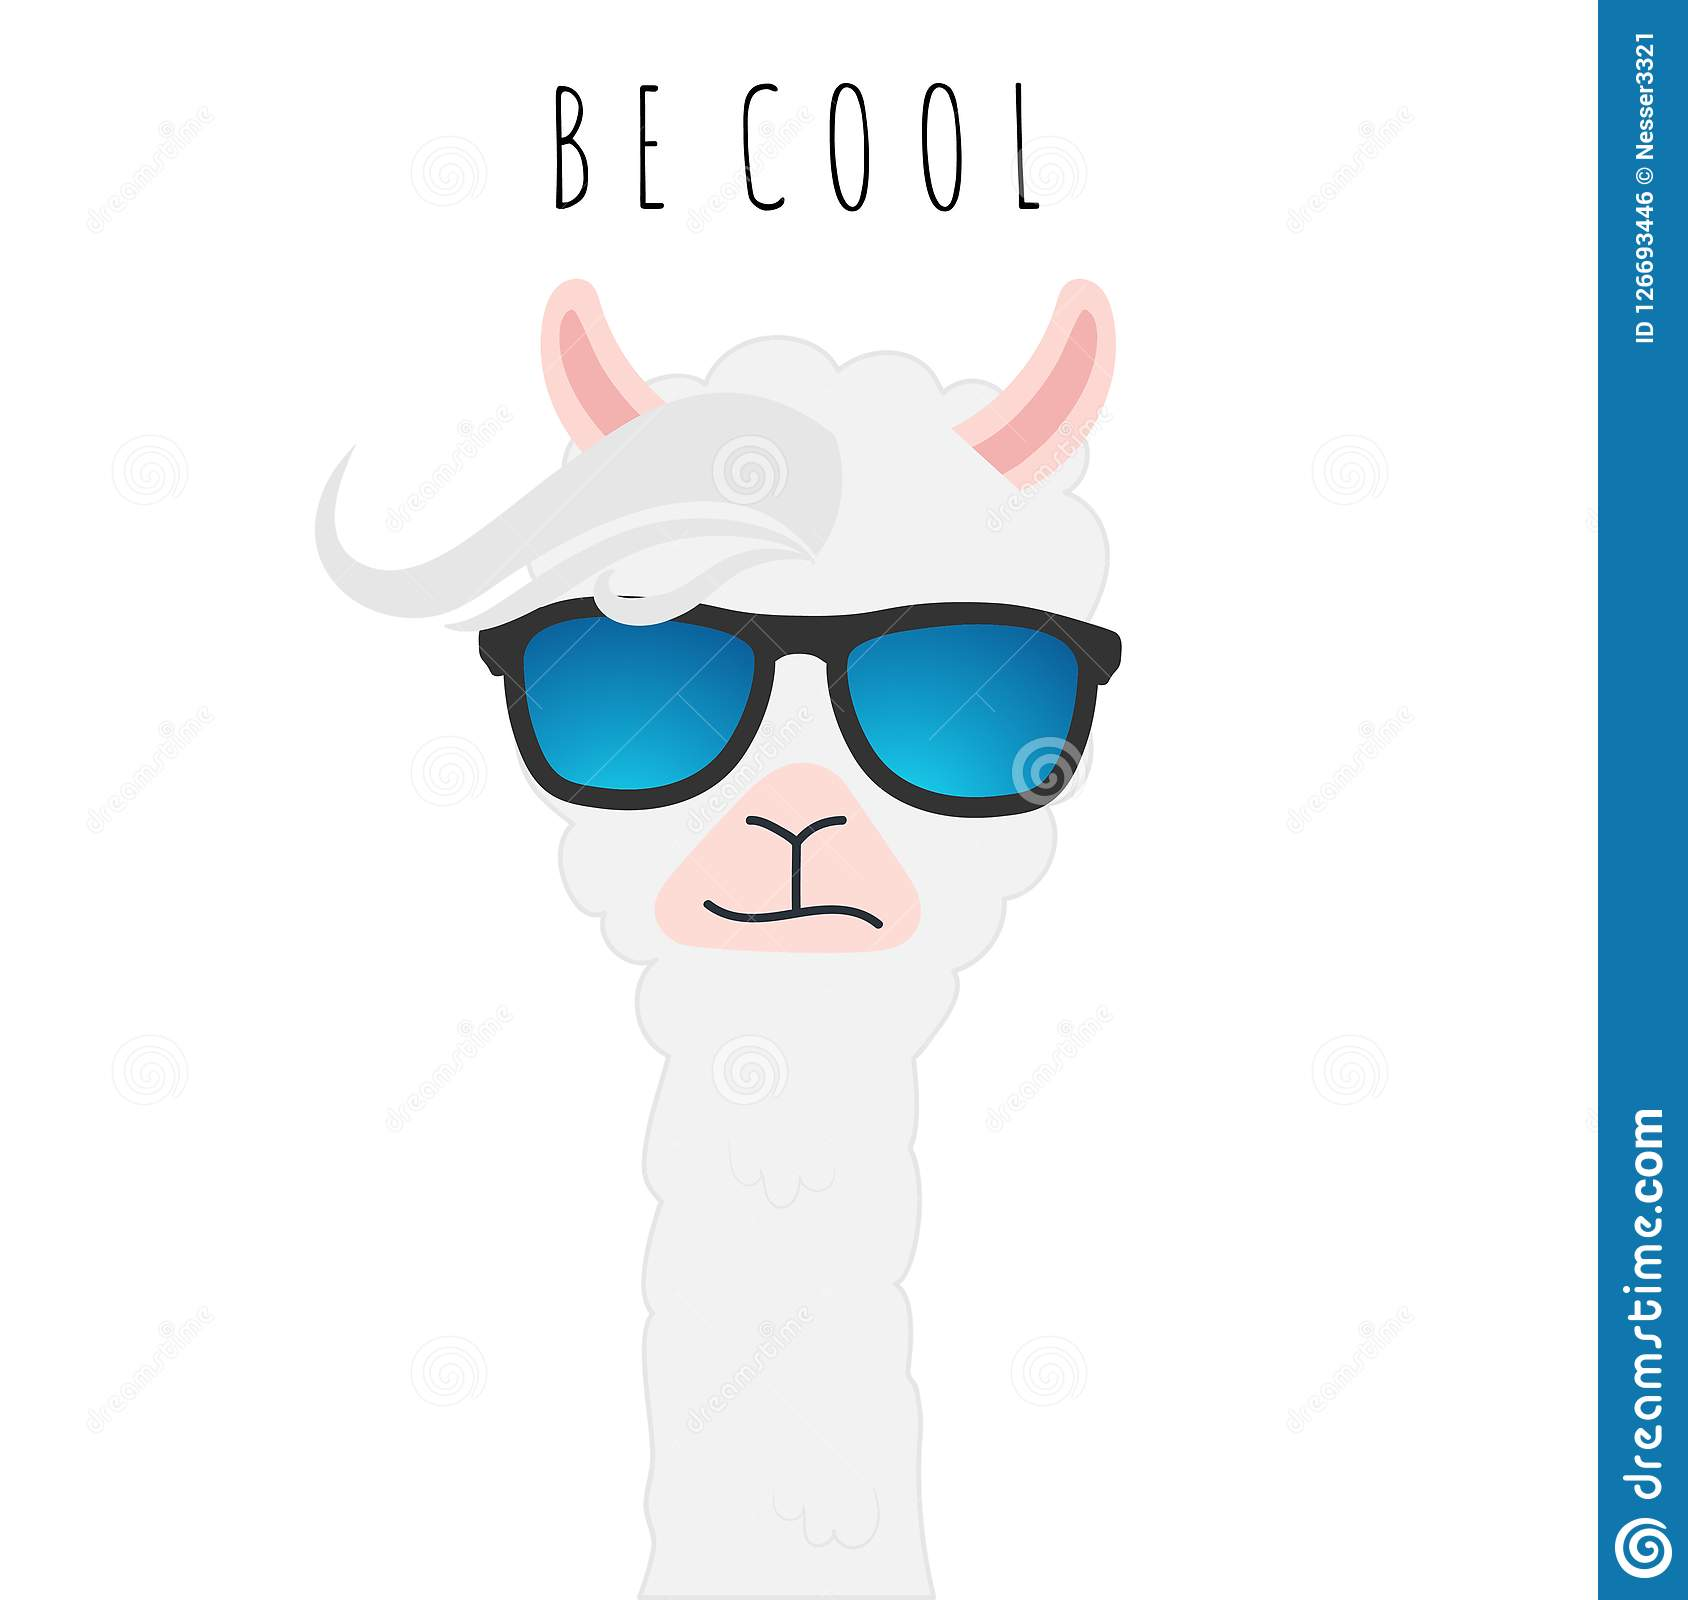 e1a4aaf08386 Cute Llama Design With No Drama Motivational Quote. Stock Vector ...